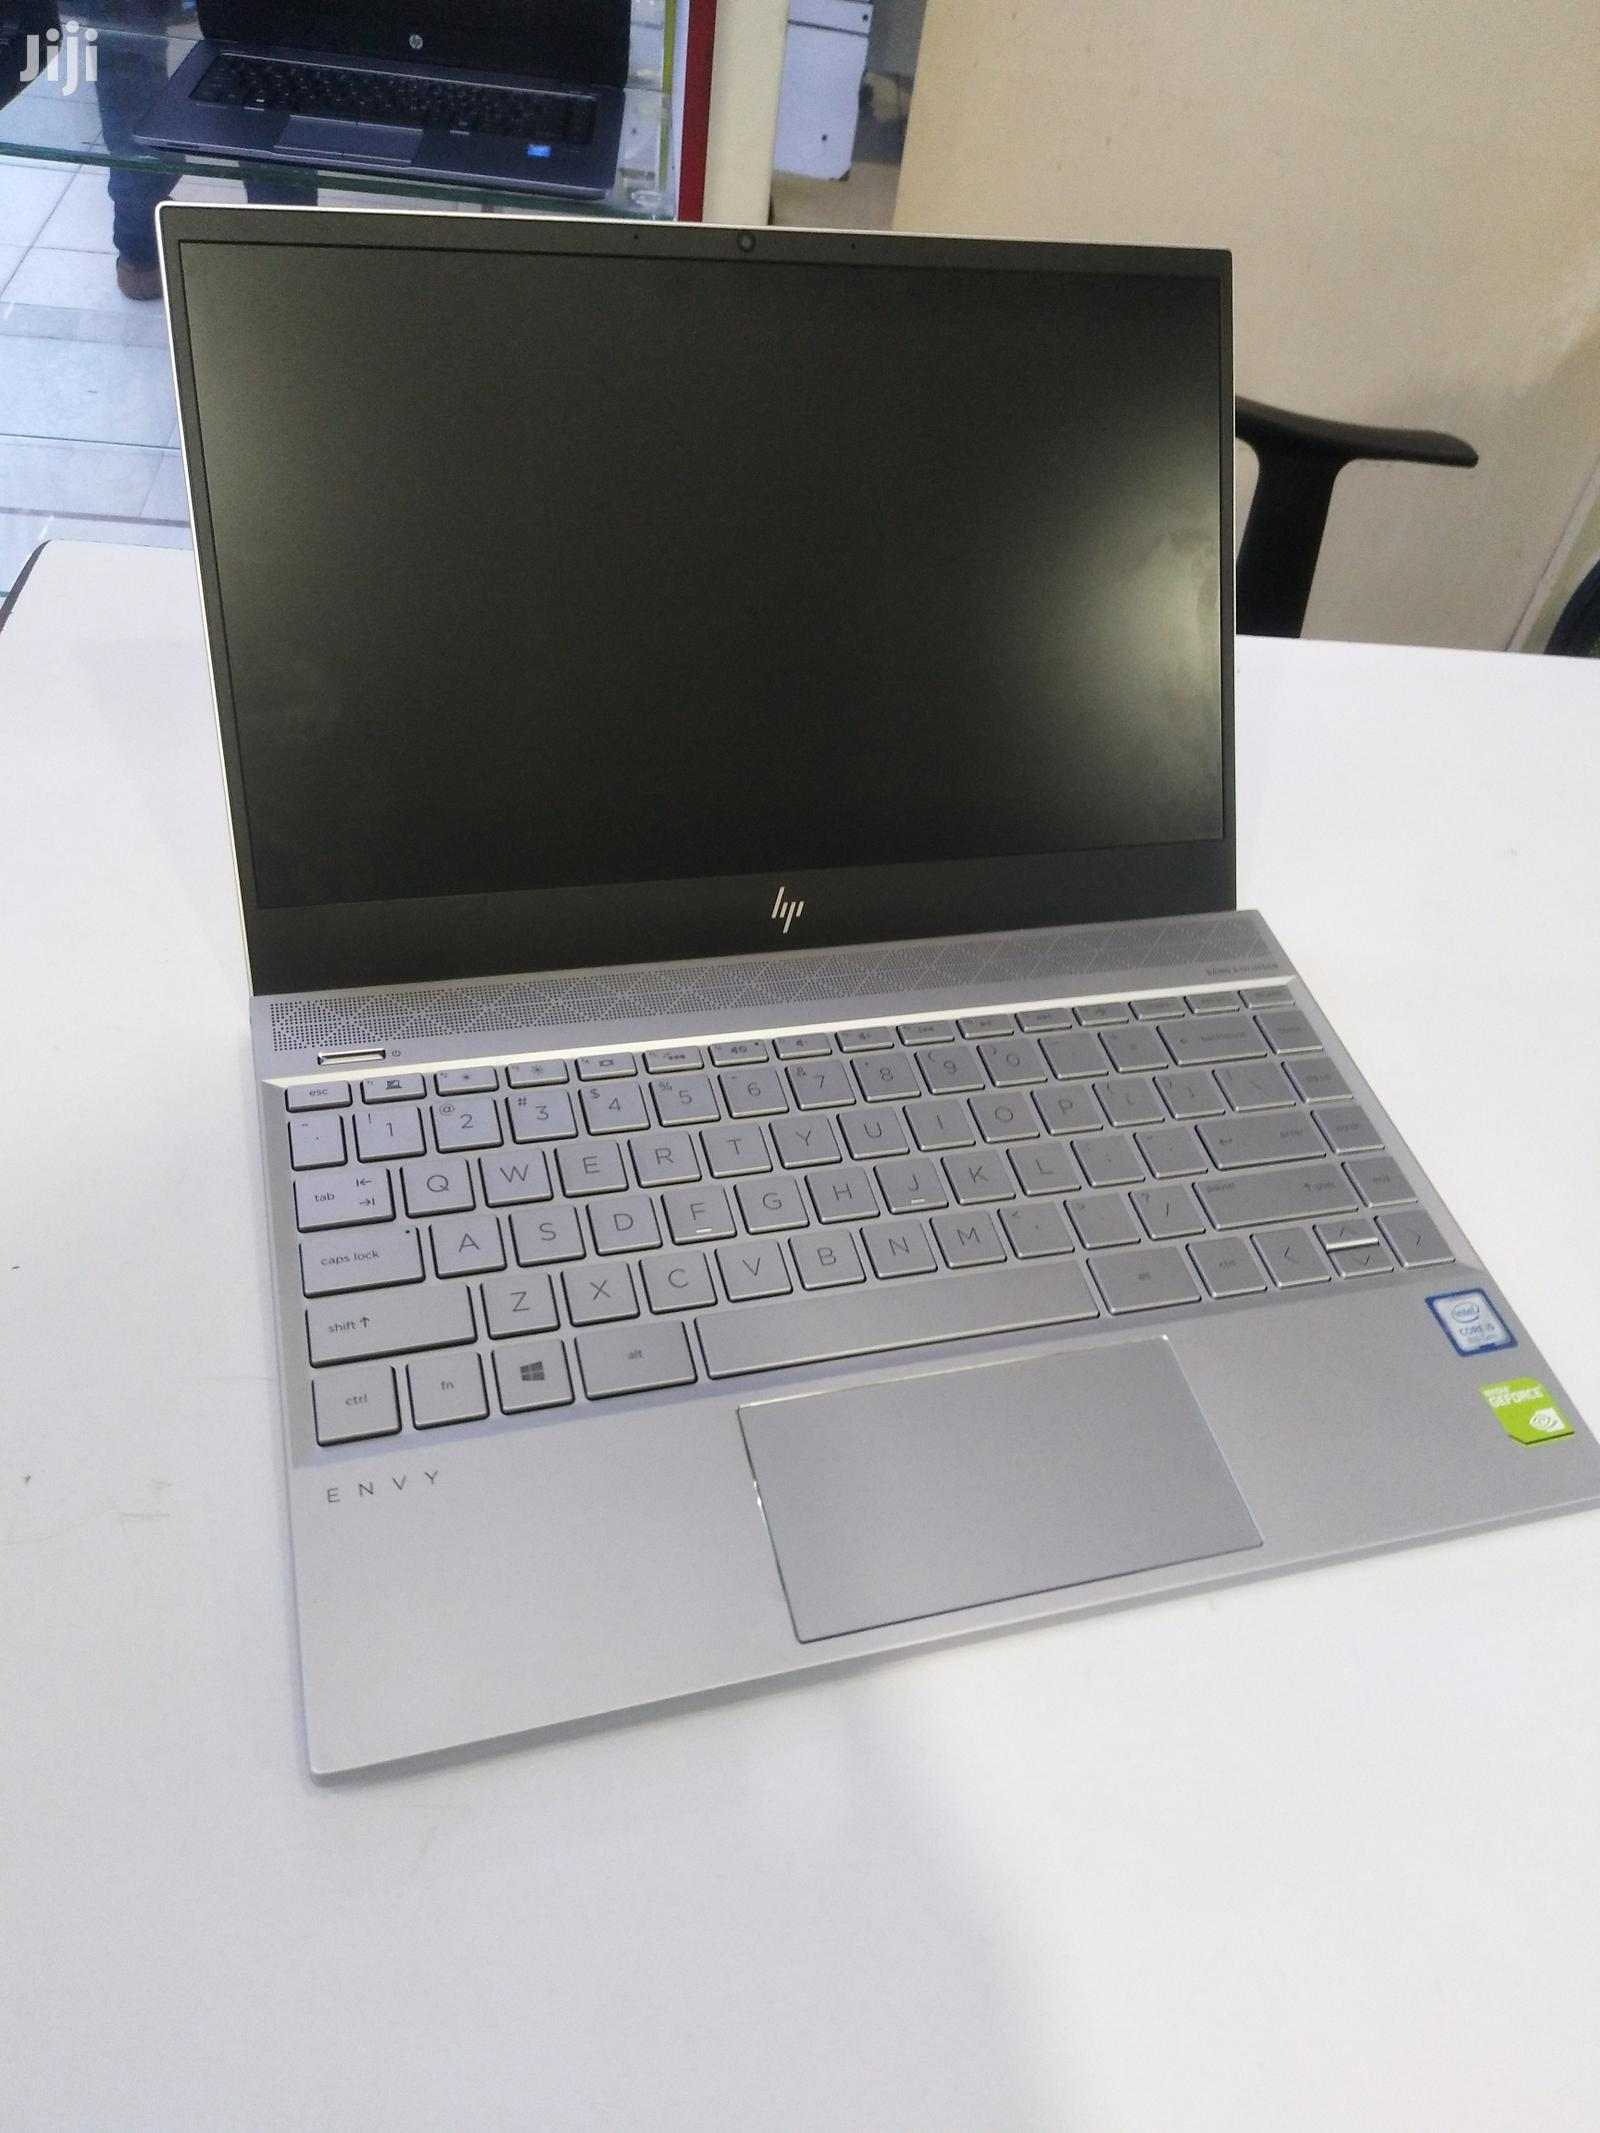 New Laptop HP Envy 13 8GB Intel Core i5 SSHD (Hybrid) 500GB